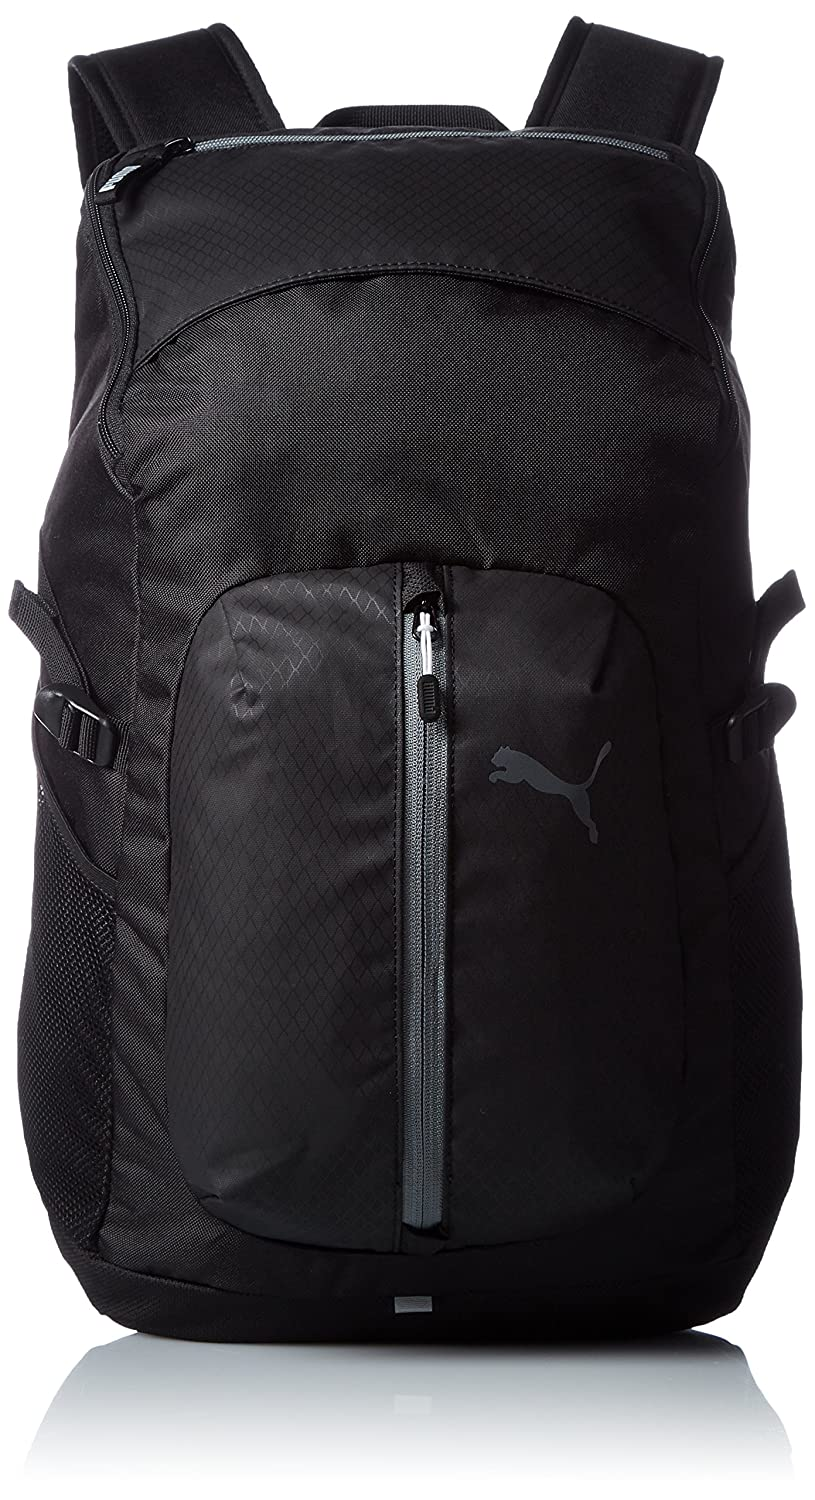 Puma 30 Ltrs Black Casual Backpack (7440201)  Amazon.in  Bags, Wallets    Luggage d2f070a286